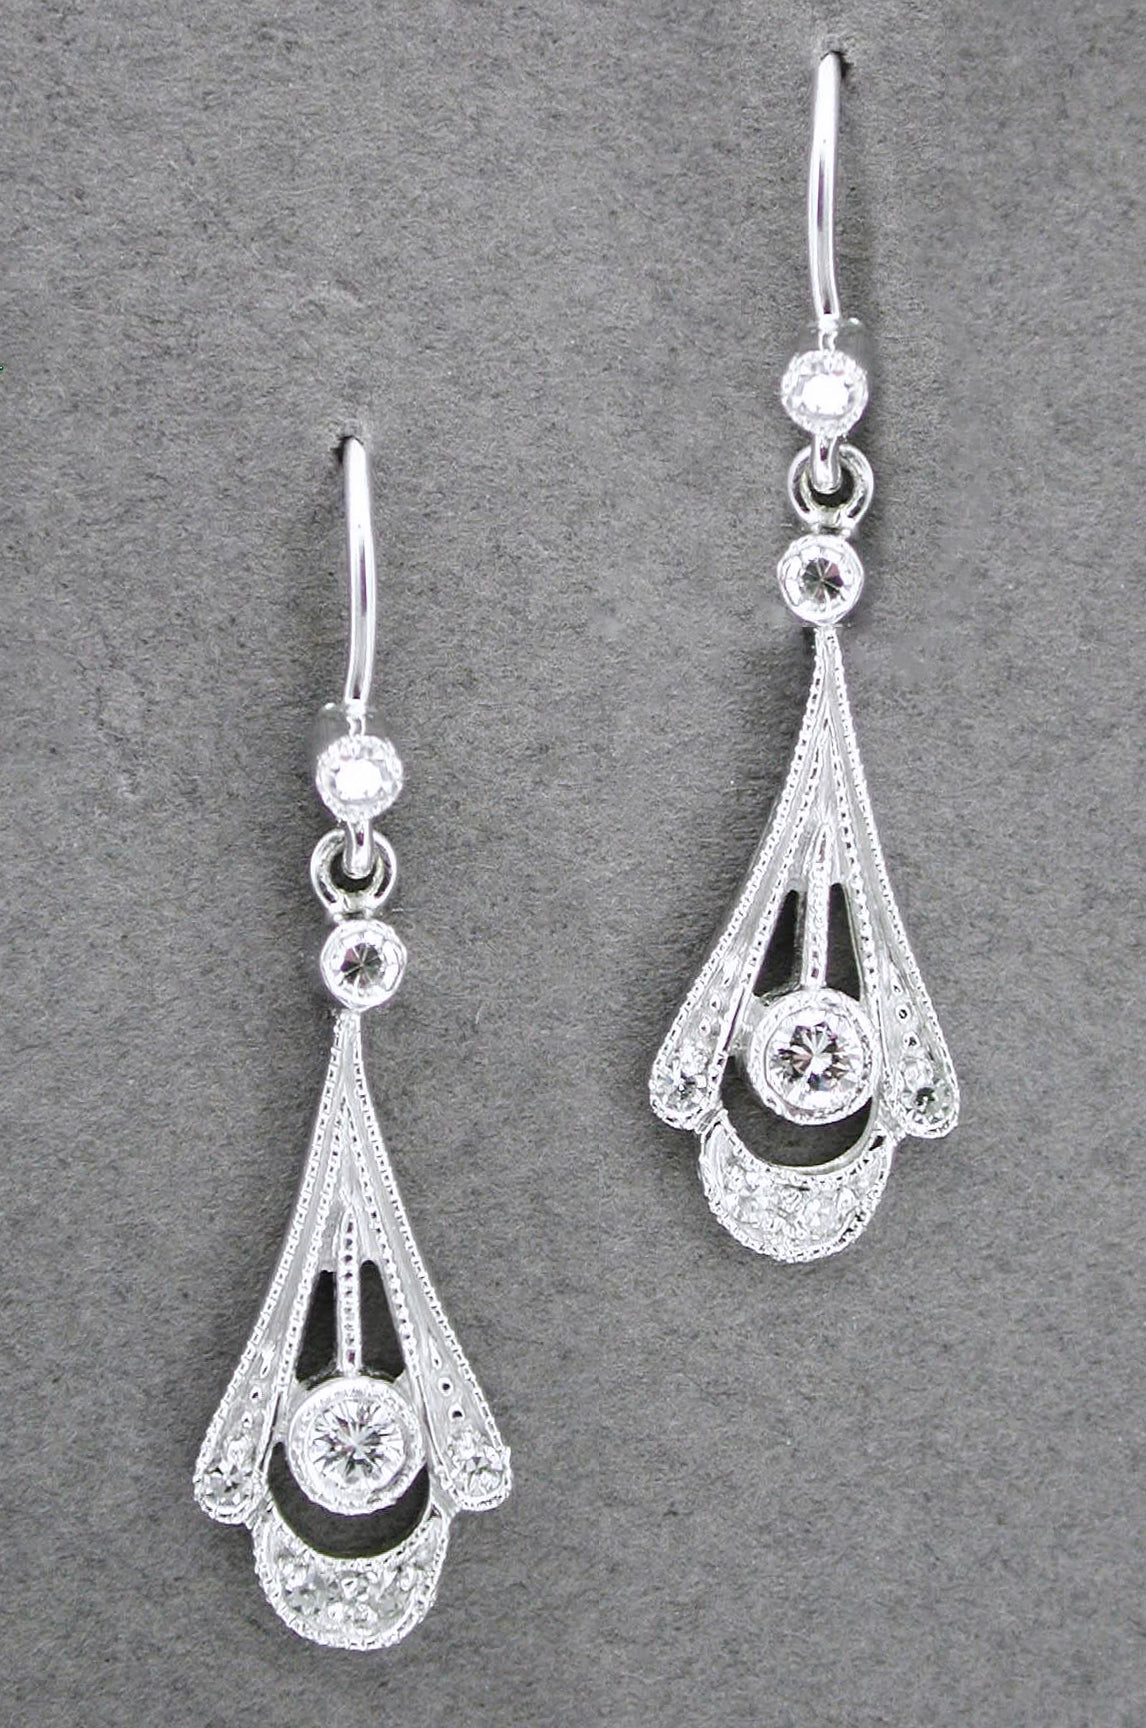 Vintage 1920s Art Deco 18k White Gold And Diamond Drop